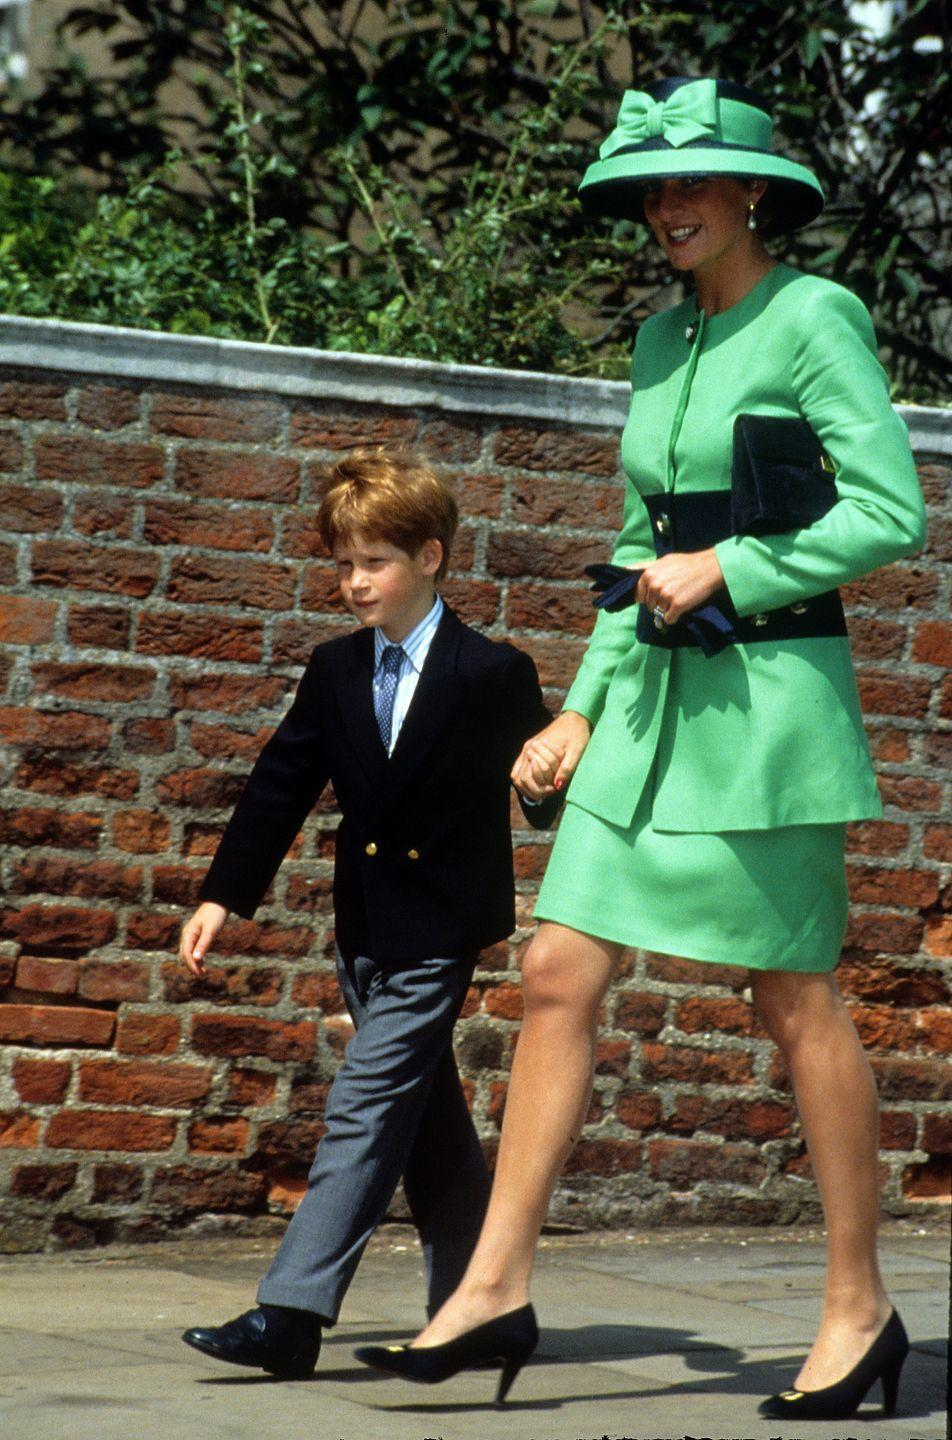 """<p>Princess Diana and Prince Harry walk to <a href=""""https://www.townandcountrymag.com/society/tradition/a14392230/st-george-chapel-windsor-castle-meghan-markle-prince-harry-wedding-venue/"""" rel=""""nofollow noopener"""" target=""""_blank"""" data-ylk=""""slk:St. George's Chapel"""" class=""""link rapid-noclick-resp"""">St. George's Chapel</a> for the wedding of Lady Helen Windsor to Tim Taylor. Diana is decked out in green from head to toe for the occasion. </p>"""